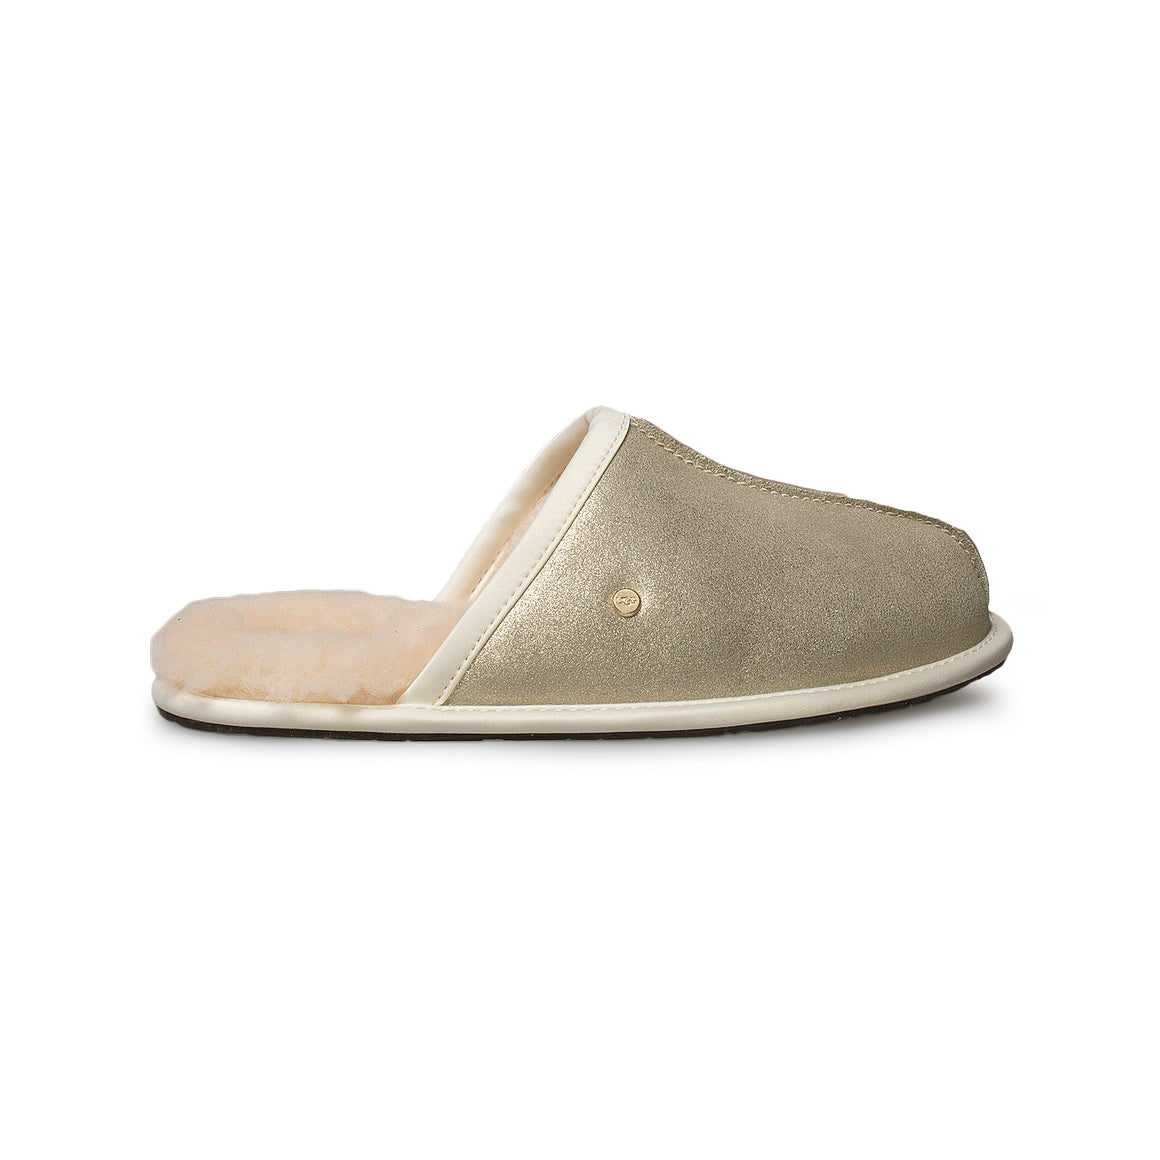 UGG Pearle Sparkle Platinum Gold Slippers - Women's